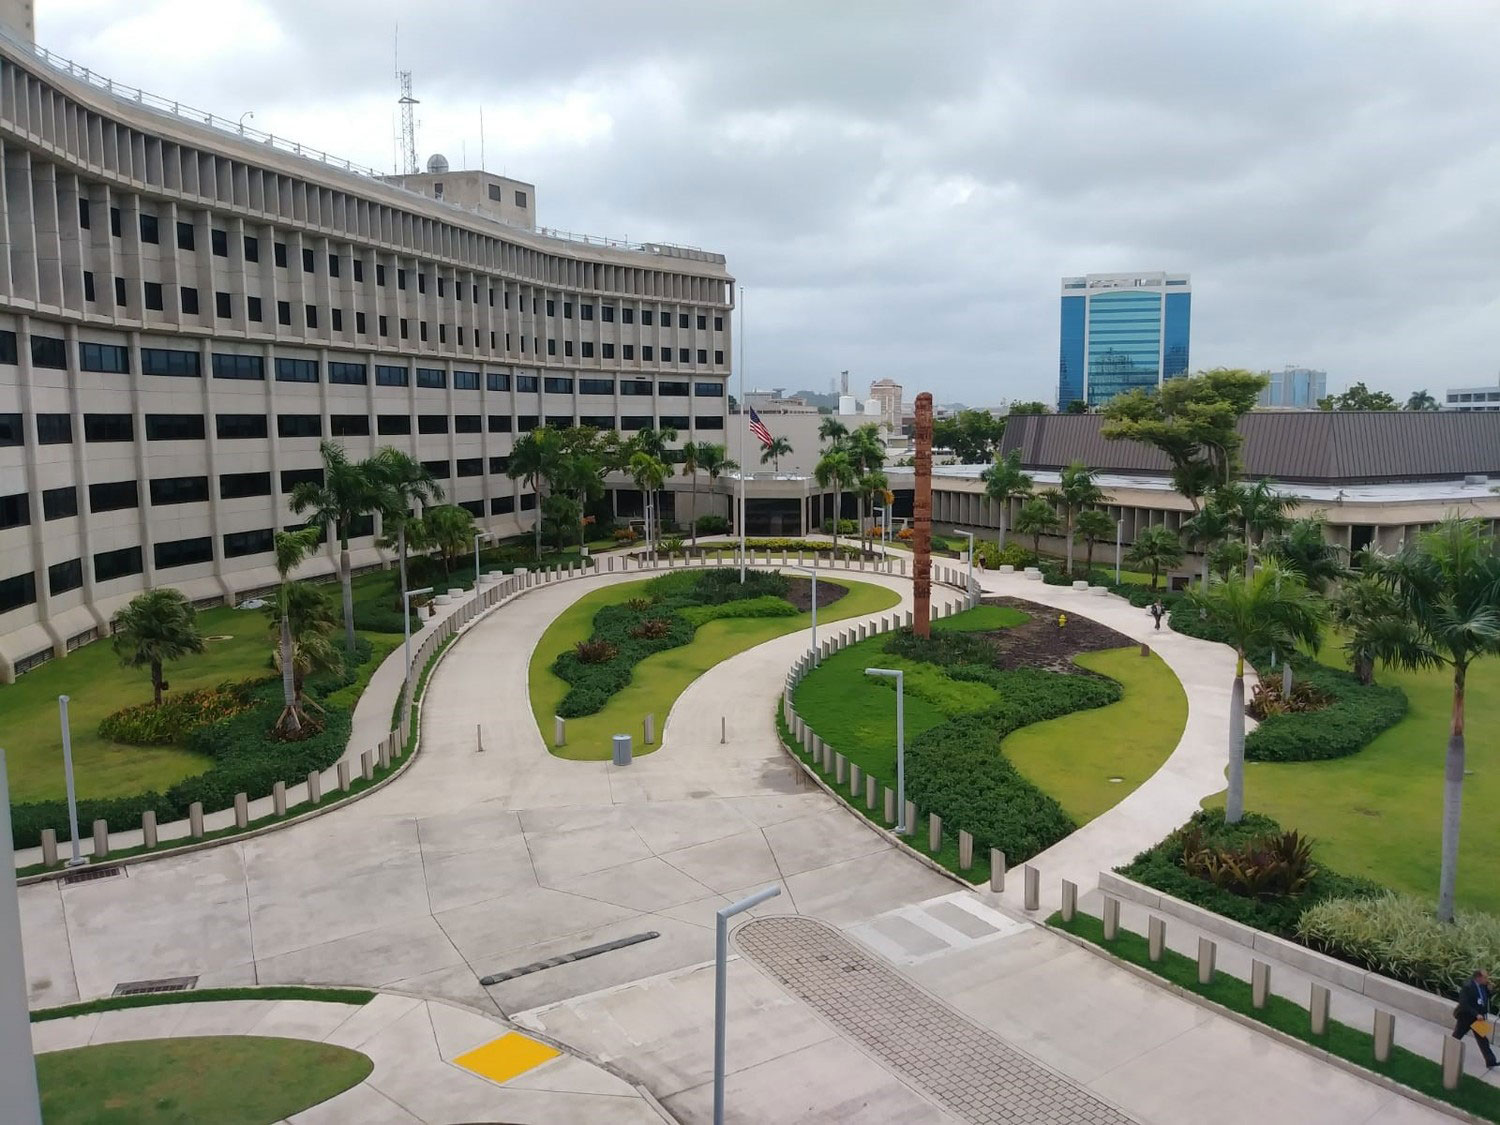 The 320,000-square-foot federal office building and 48,000-square-foot courthouse were both redesigned and upgraded. Photo courtesy of Dewberry.